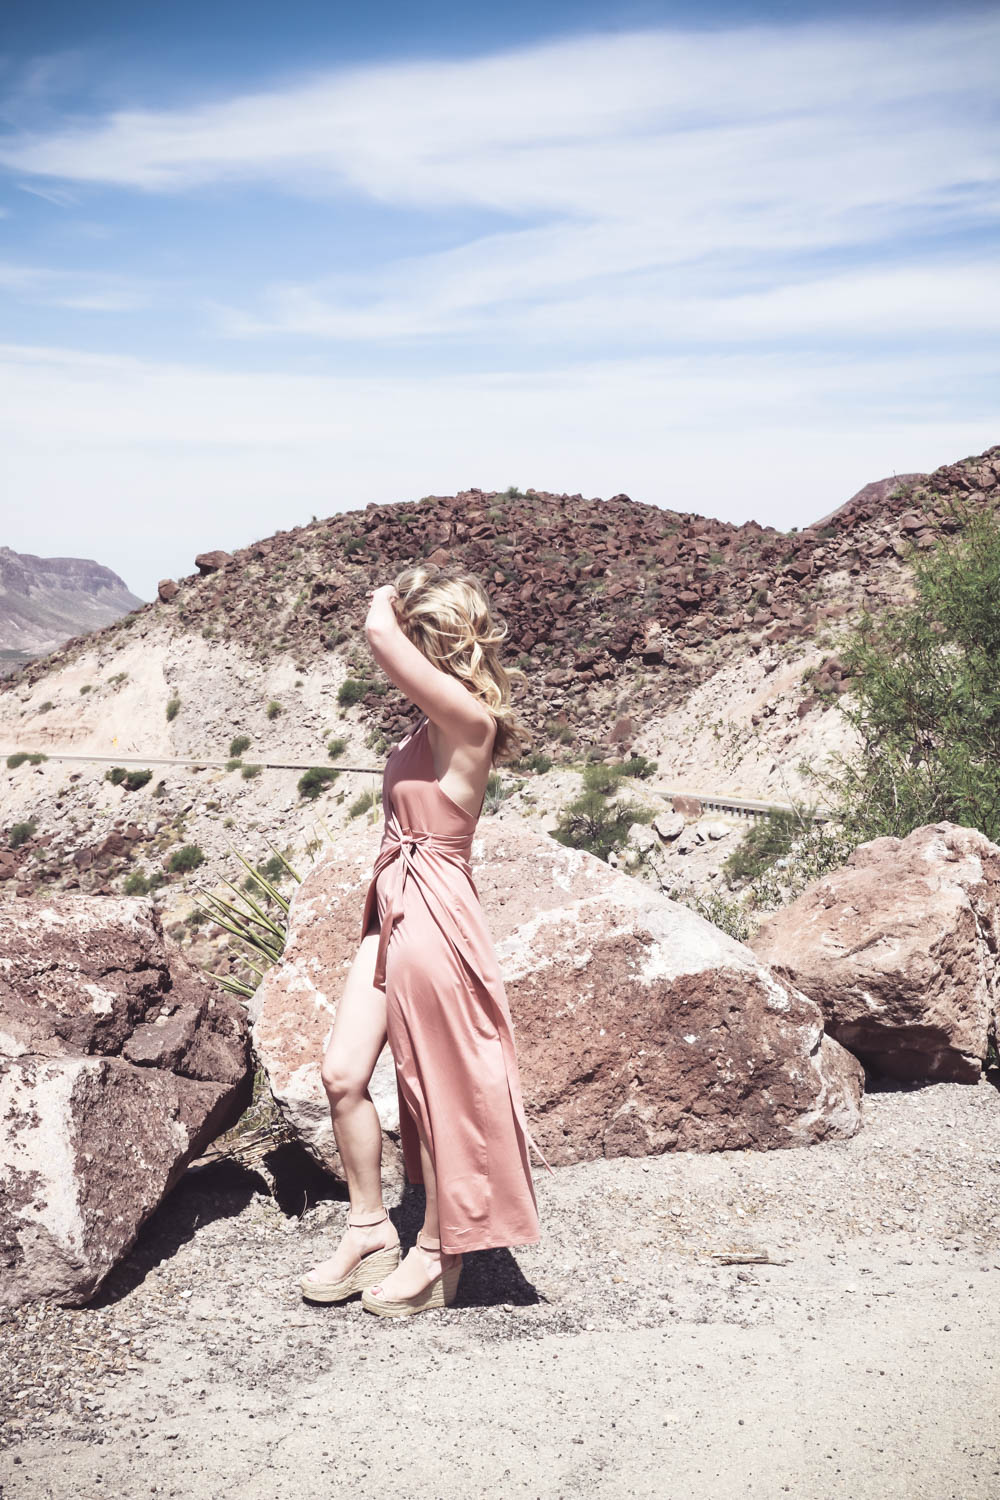 Wrap Dress in blush nude color on fashion blogger and fashion youtuber erin busbee of busbestyle, san antonio, texas, shot near Big Bend National Park in West Texas along the Rio Grande, fashion ideas for women over 40